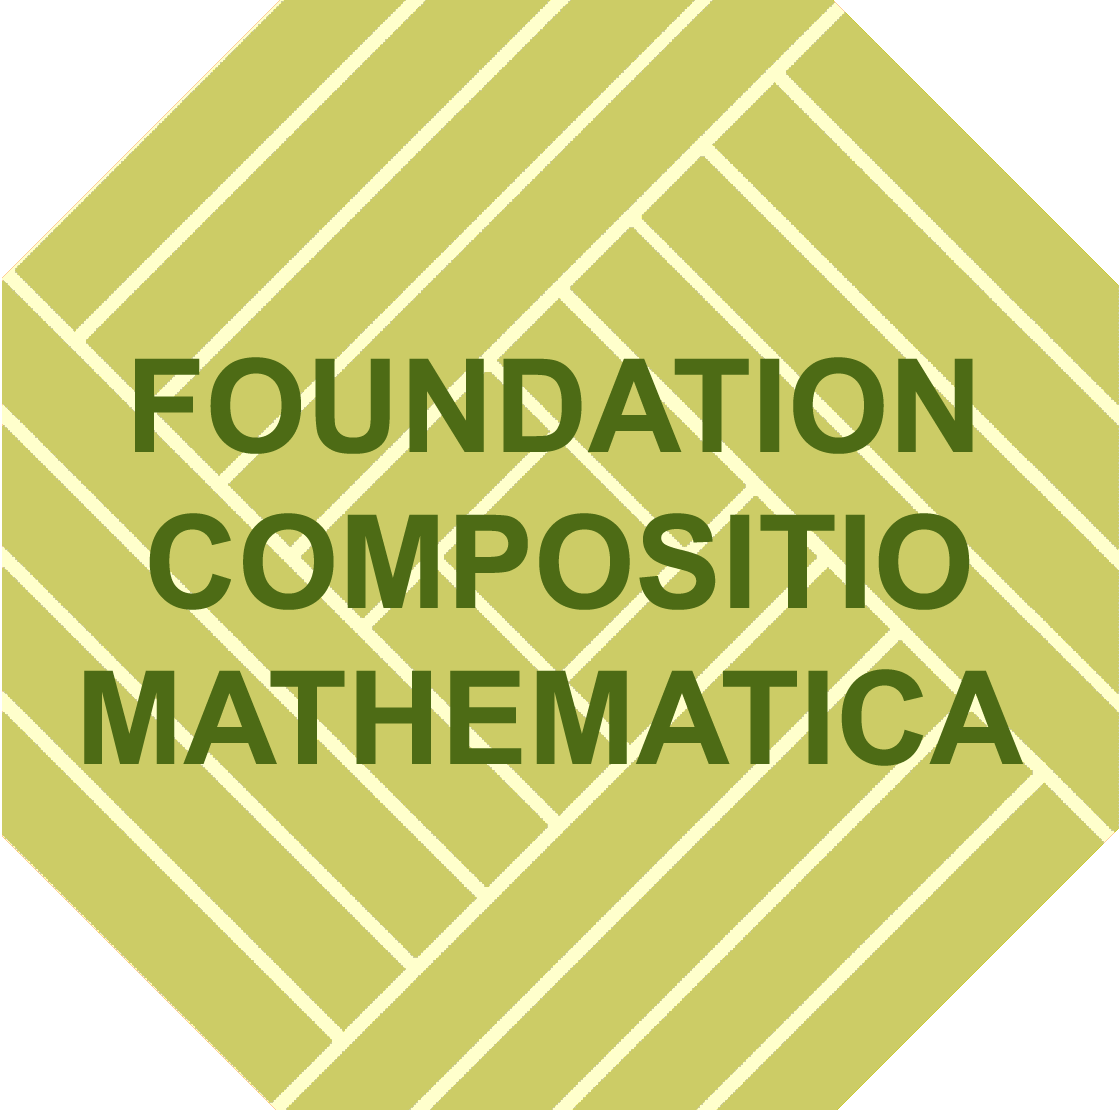 Stichting Compositio Mathematica